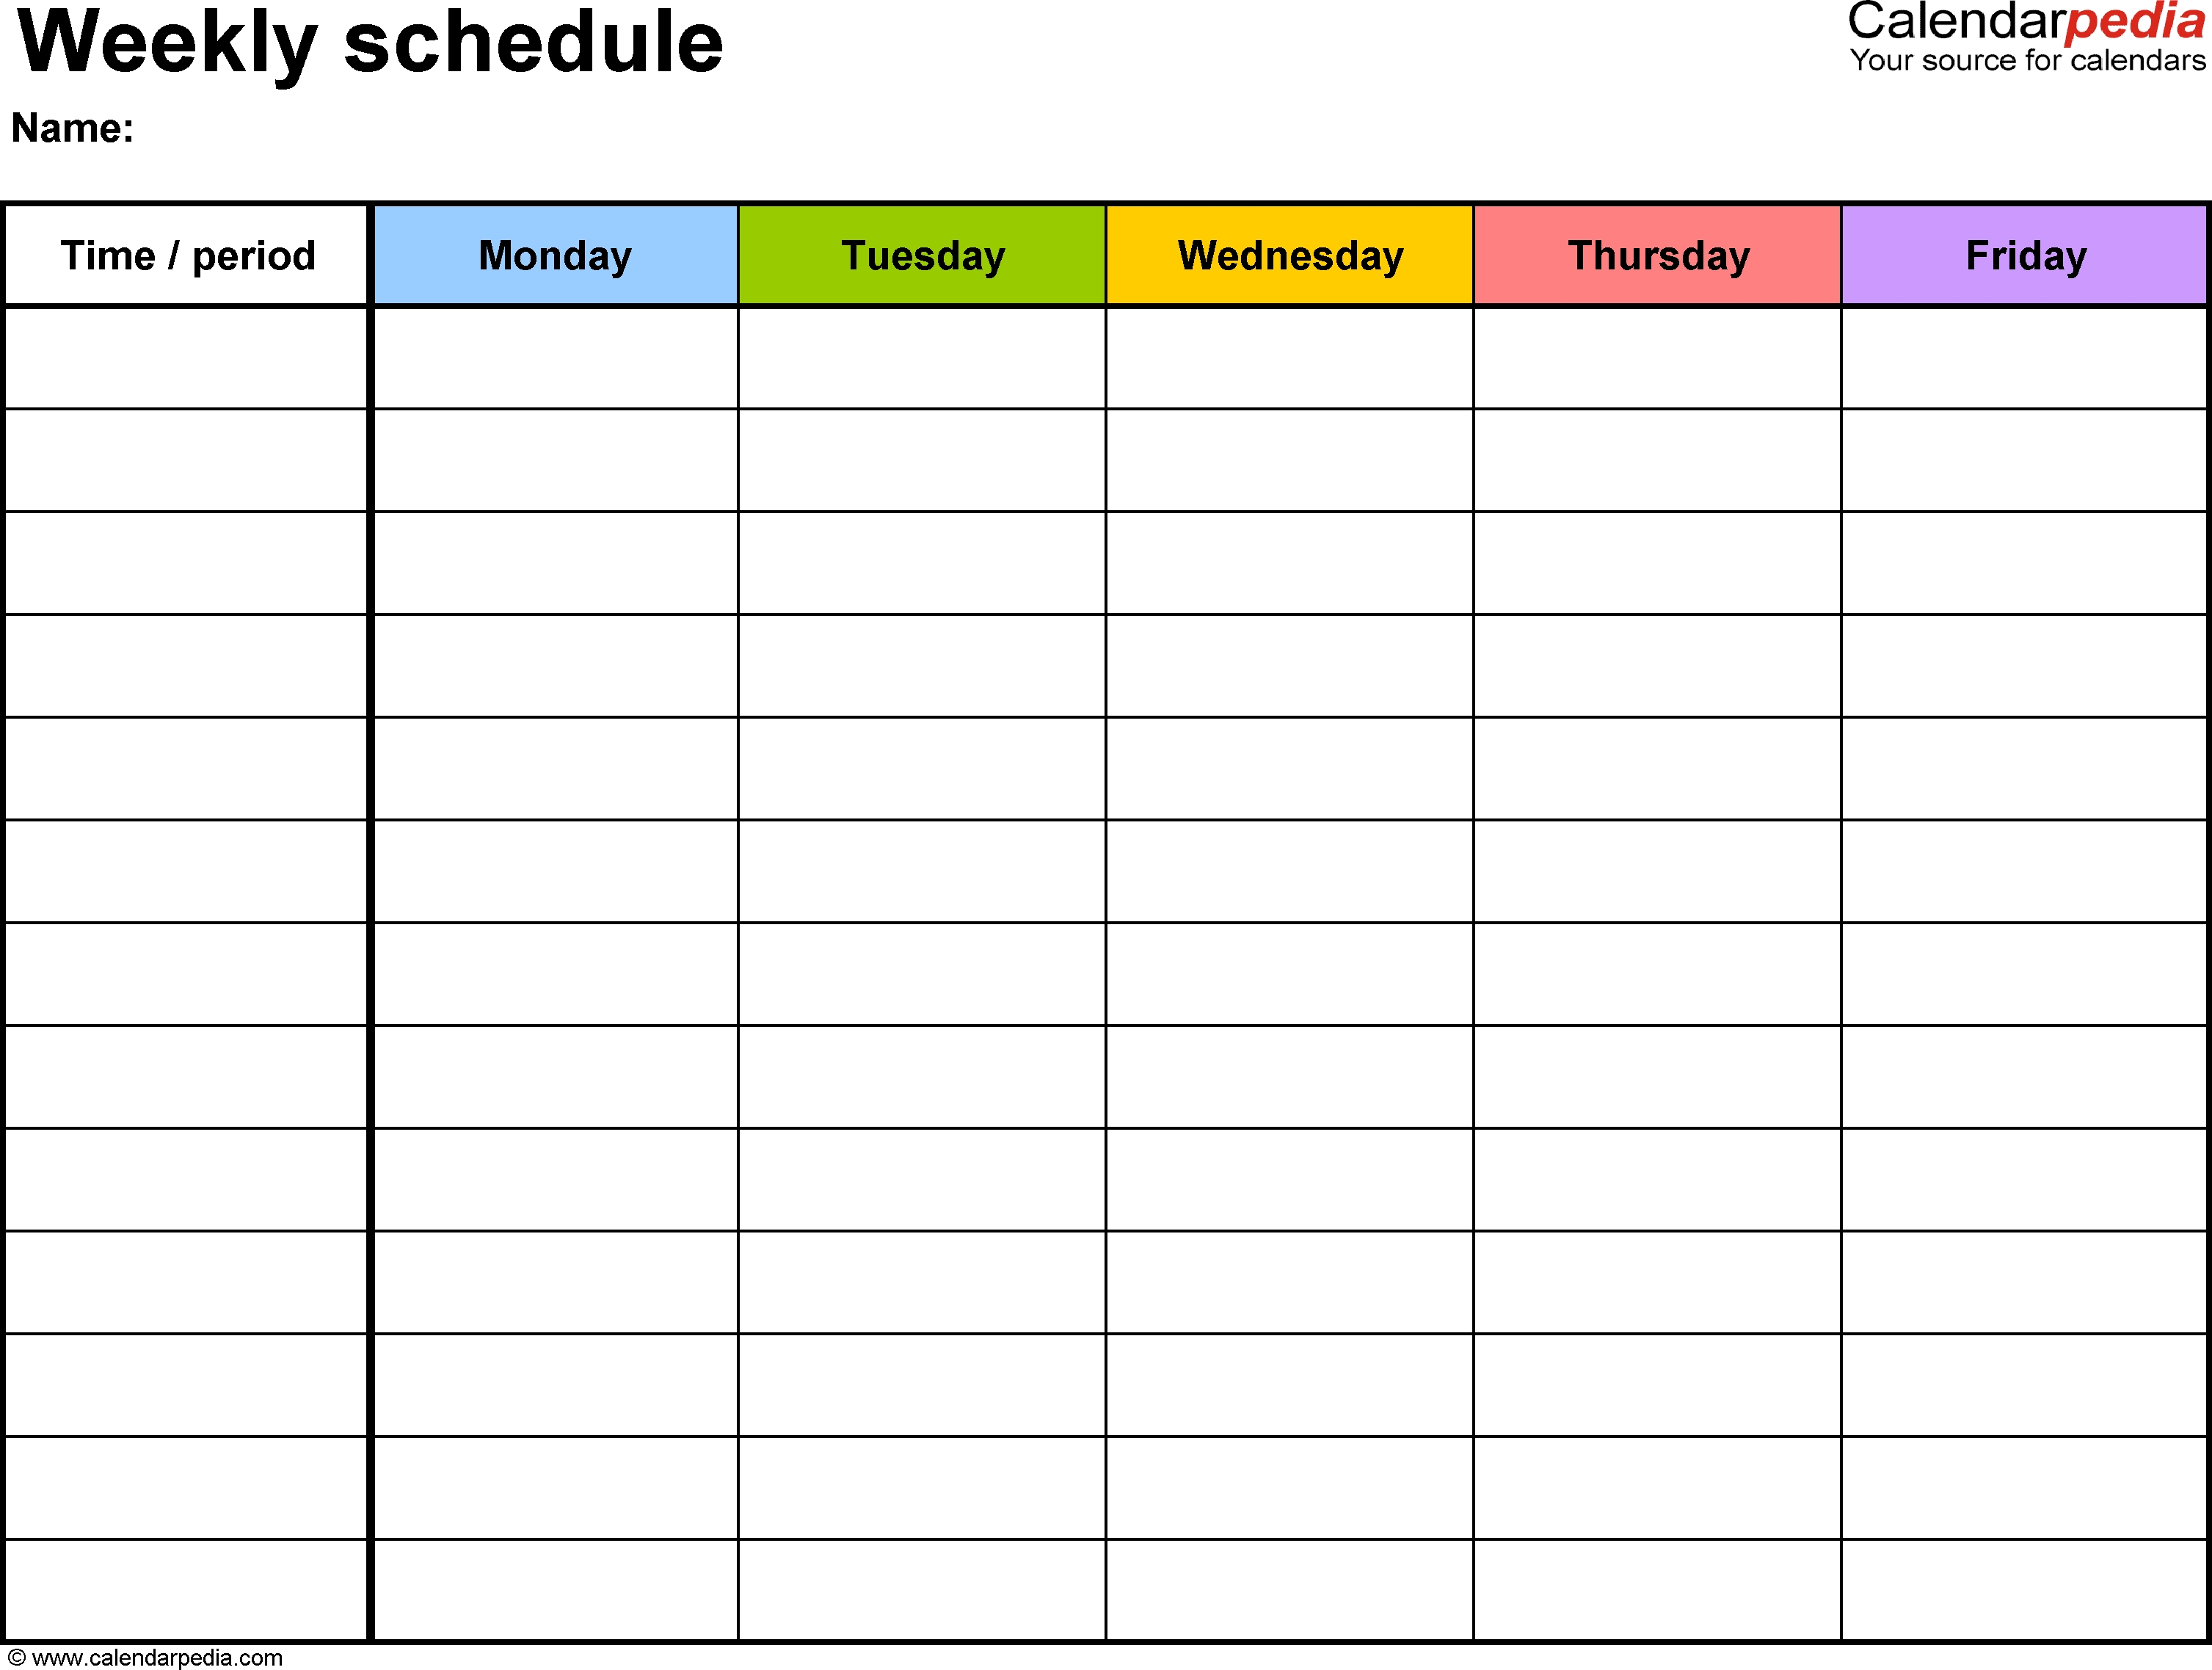 Free Weekly Schedule Templates For Excel - 18 Templates for Emplyee Schedule Template Starting Friday